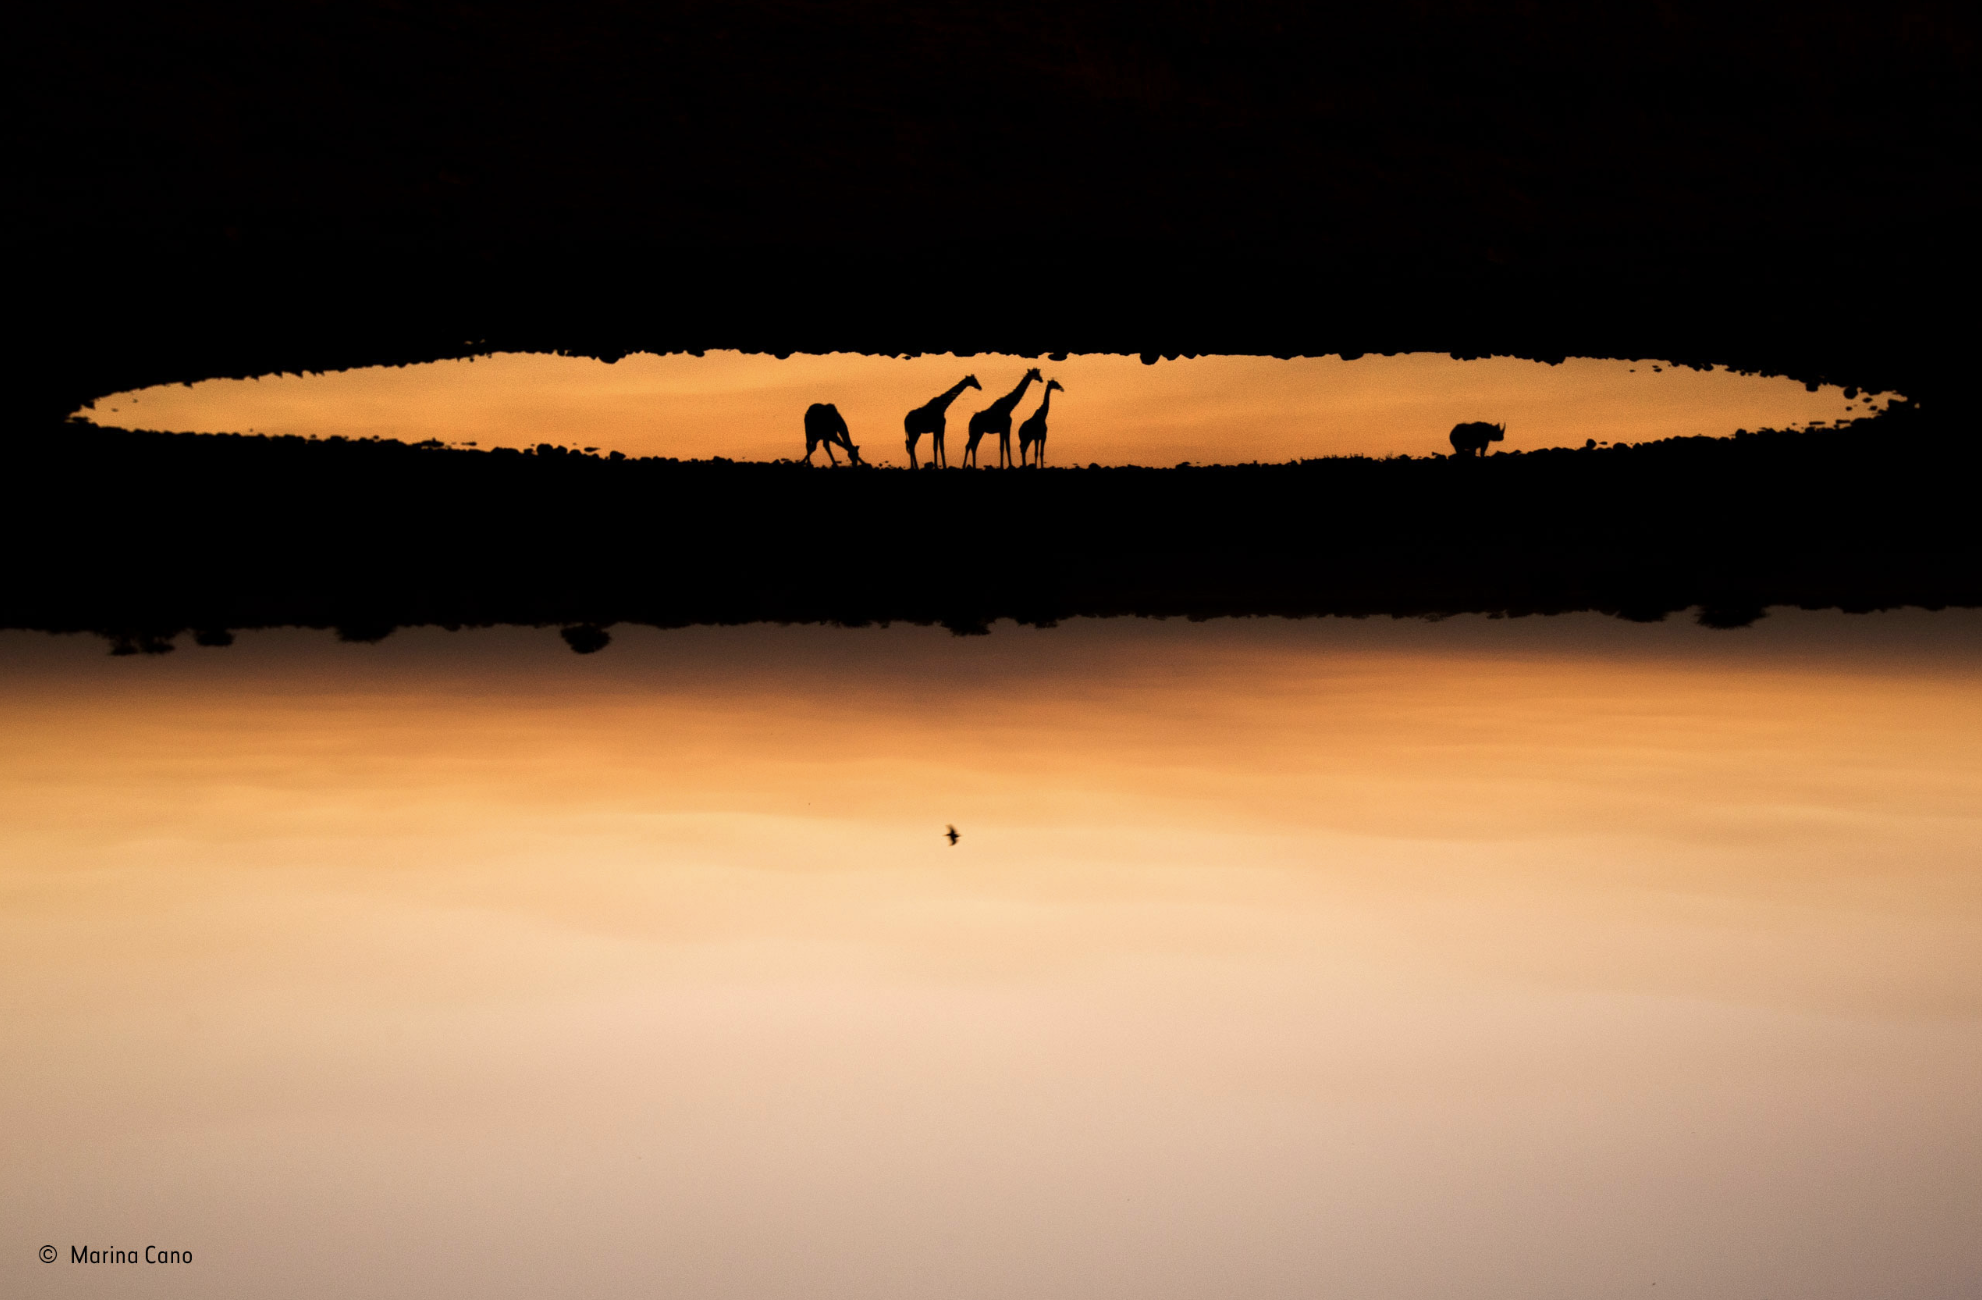 Marina Cano Wildlife Photographer